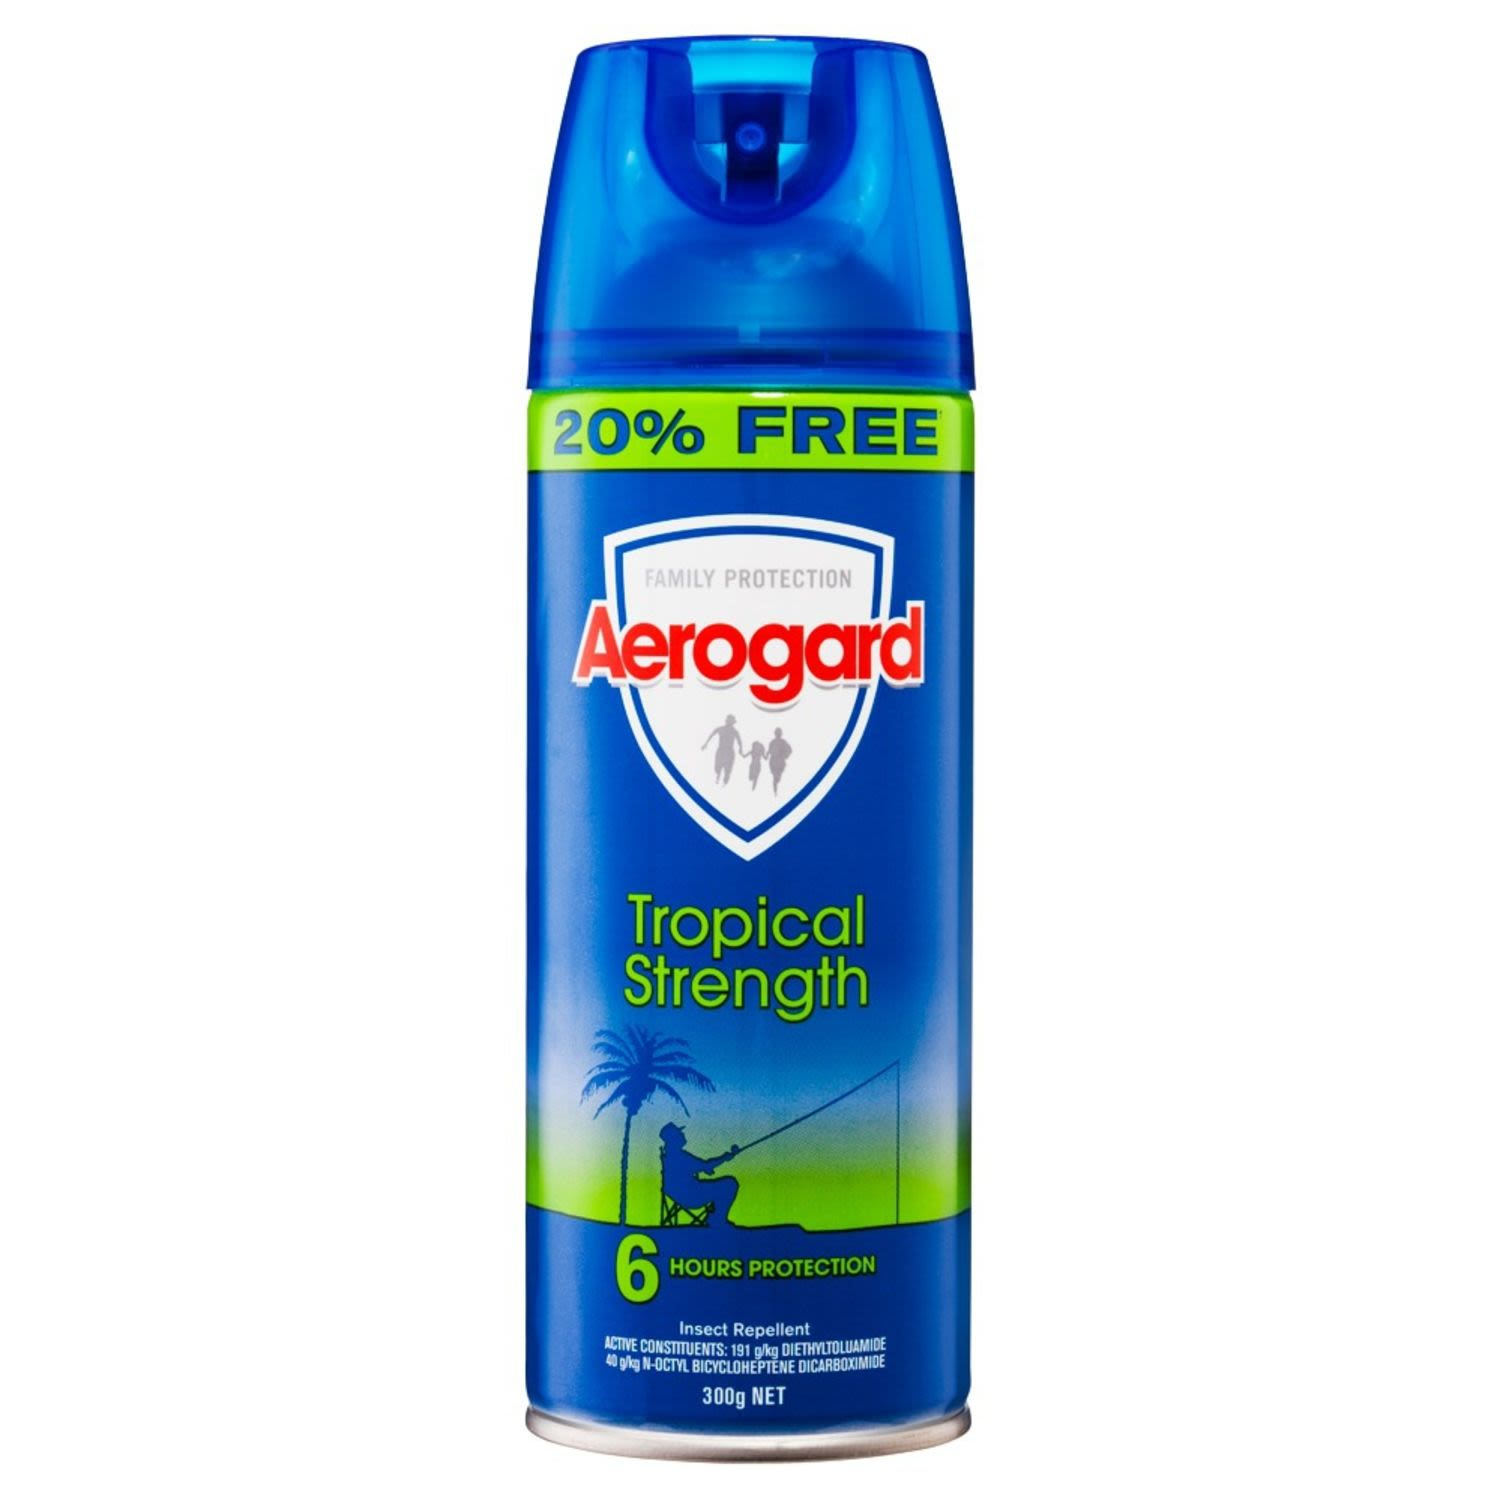 Aerogard Insect Repellent Tropical Strength 20% Free, 300 Gram